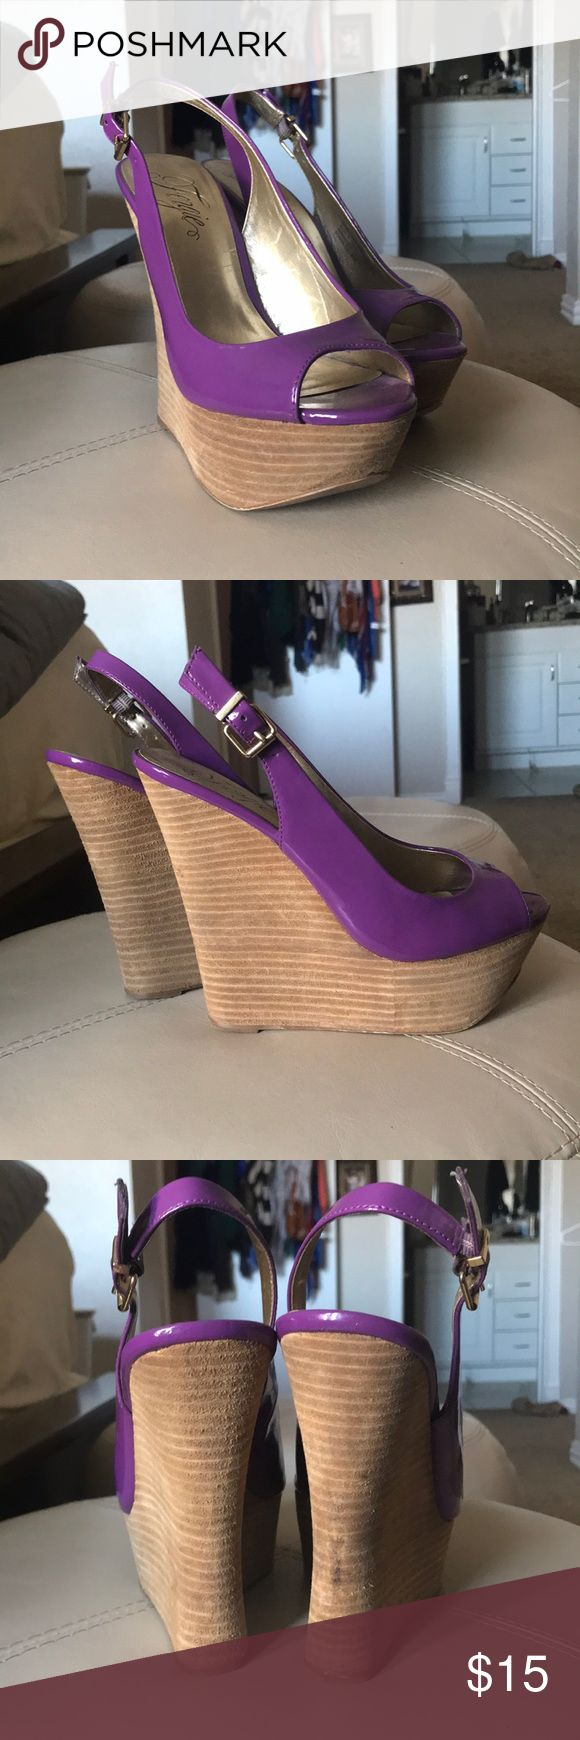 Fergie Purple Wedges Size 8 Purple wedges size 8 Worn only a few times and have been sitting in my closet. 🤷🏼‍♀️ From Fergie Fergie Shoes Wedges